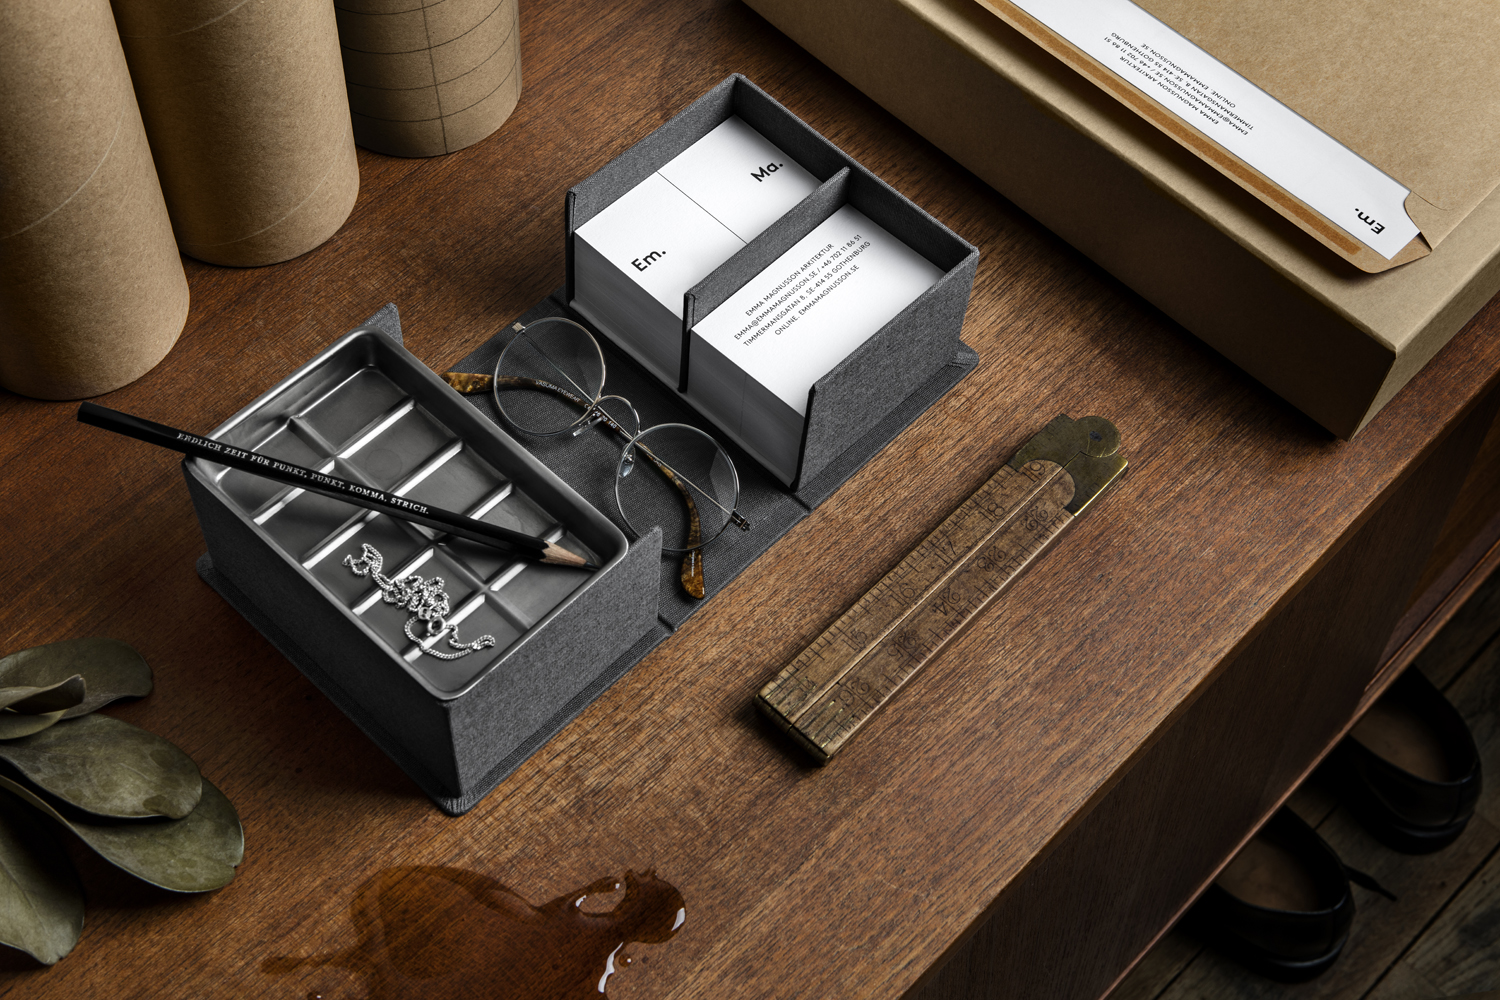 Brand identity, business cards and bespoke stationery boxes for Emma Magnusson Arkitektur by Lundgren+Lindqvist, Sweden